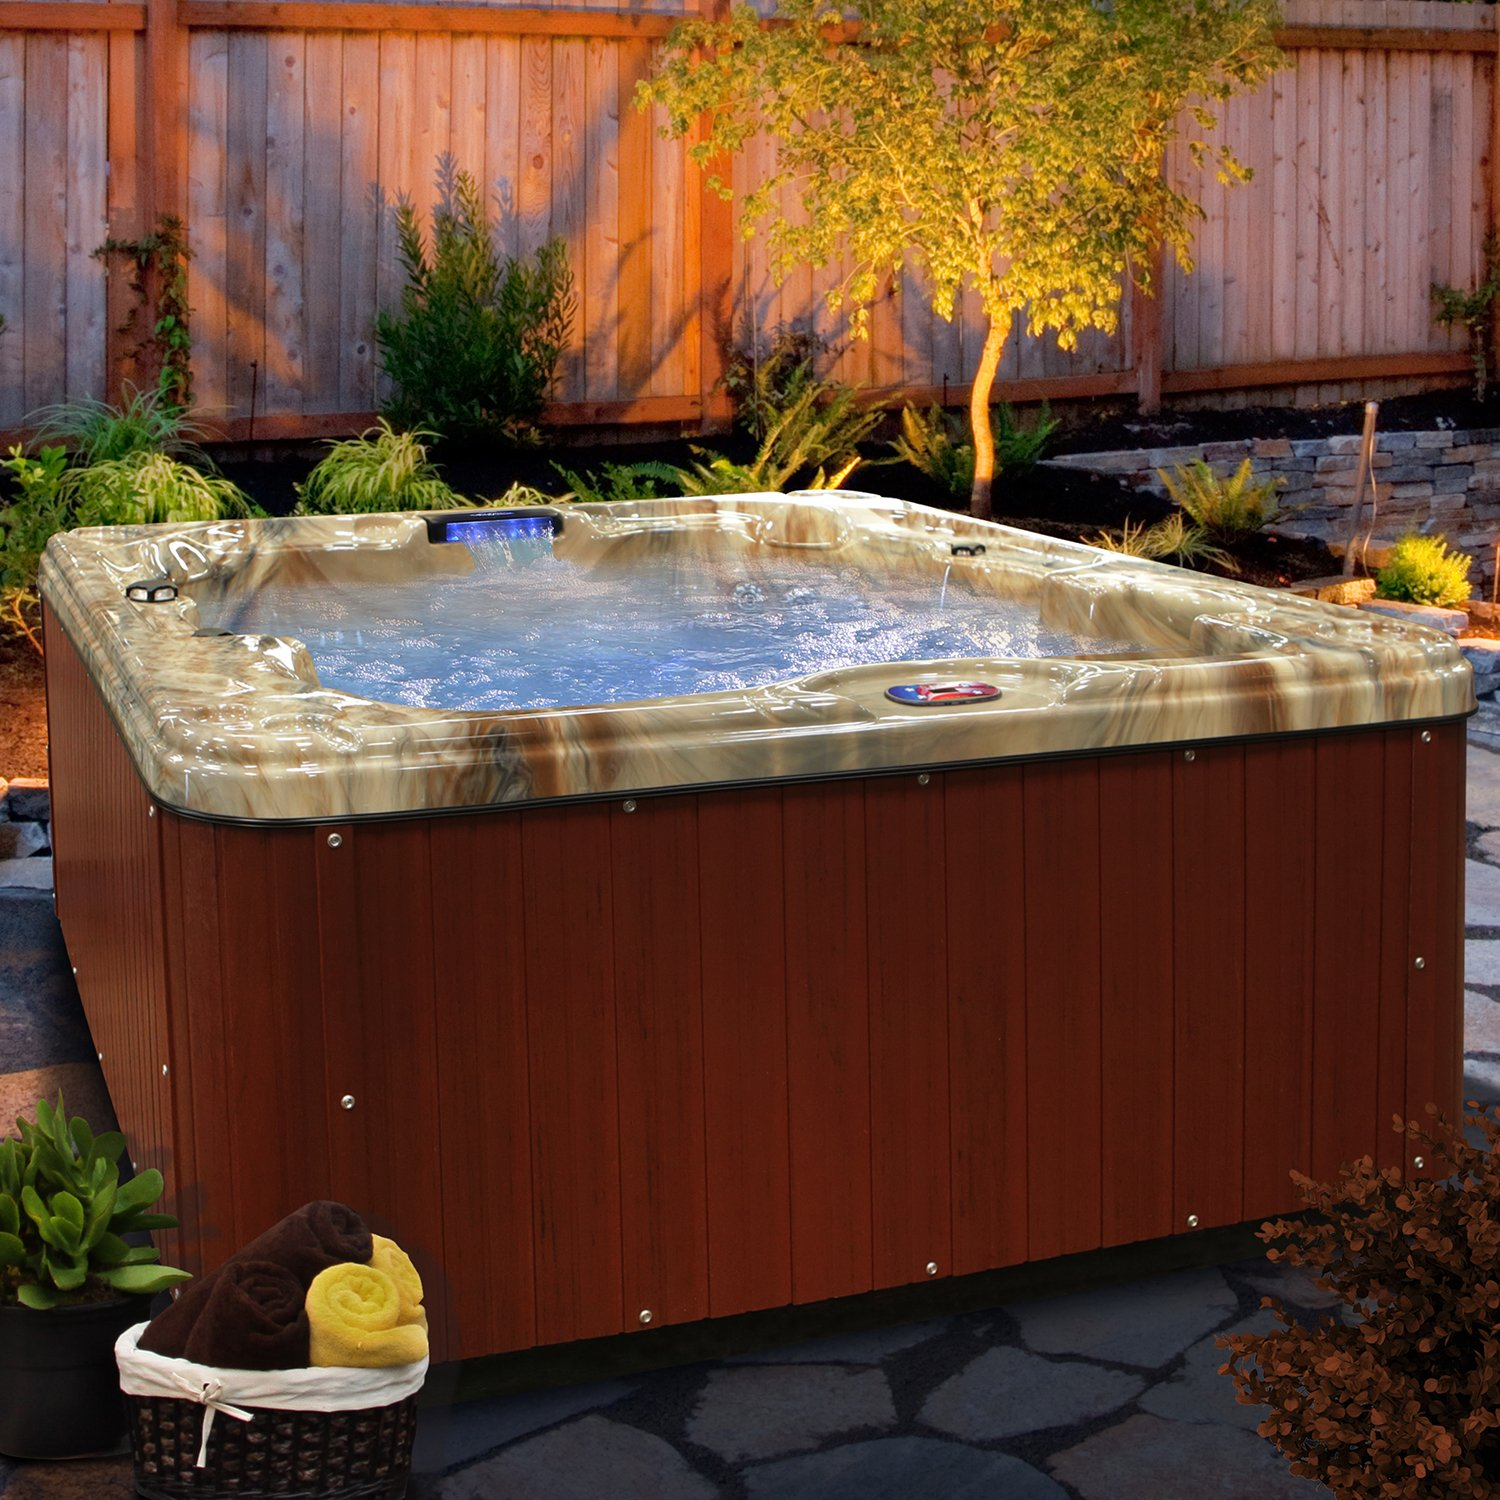 amazoncom american spas am730lm 6person 30jet lounger spa with backlit led waterfall tuscany sun and mahogany garden u0026 outdoor